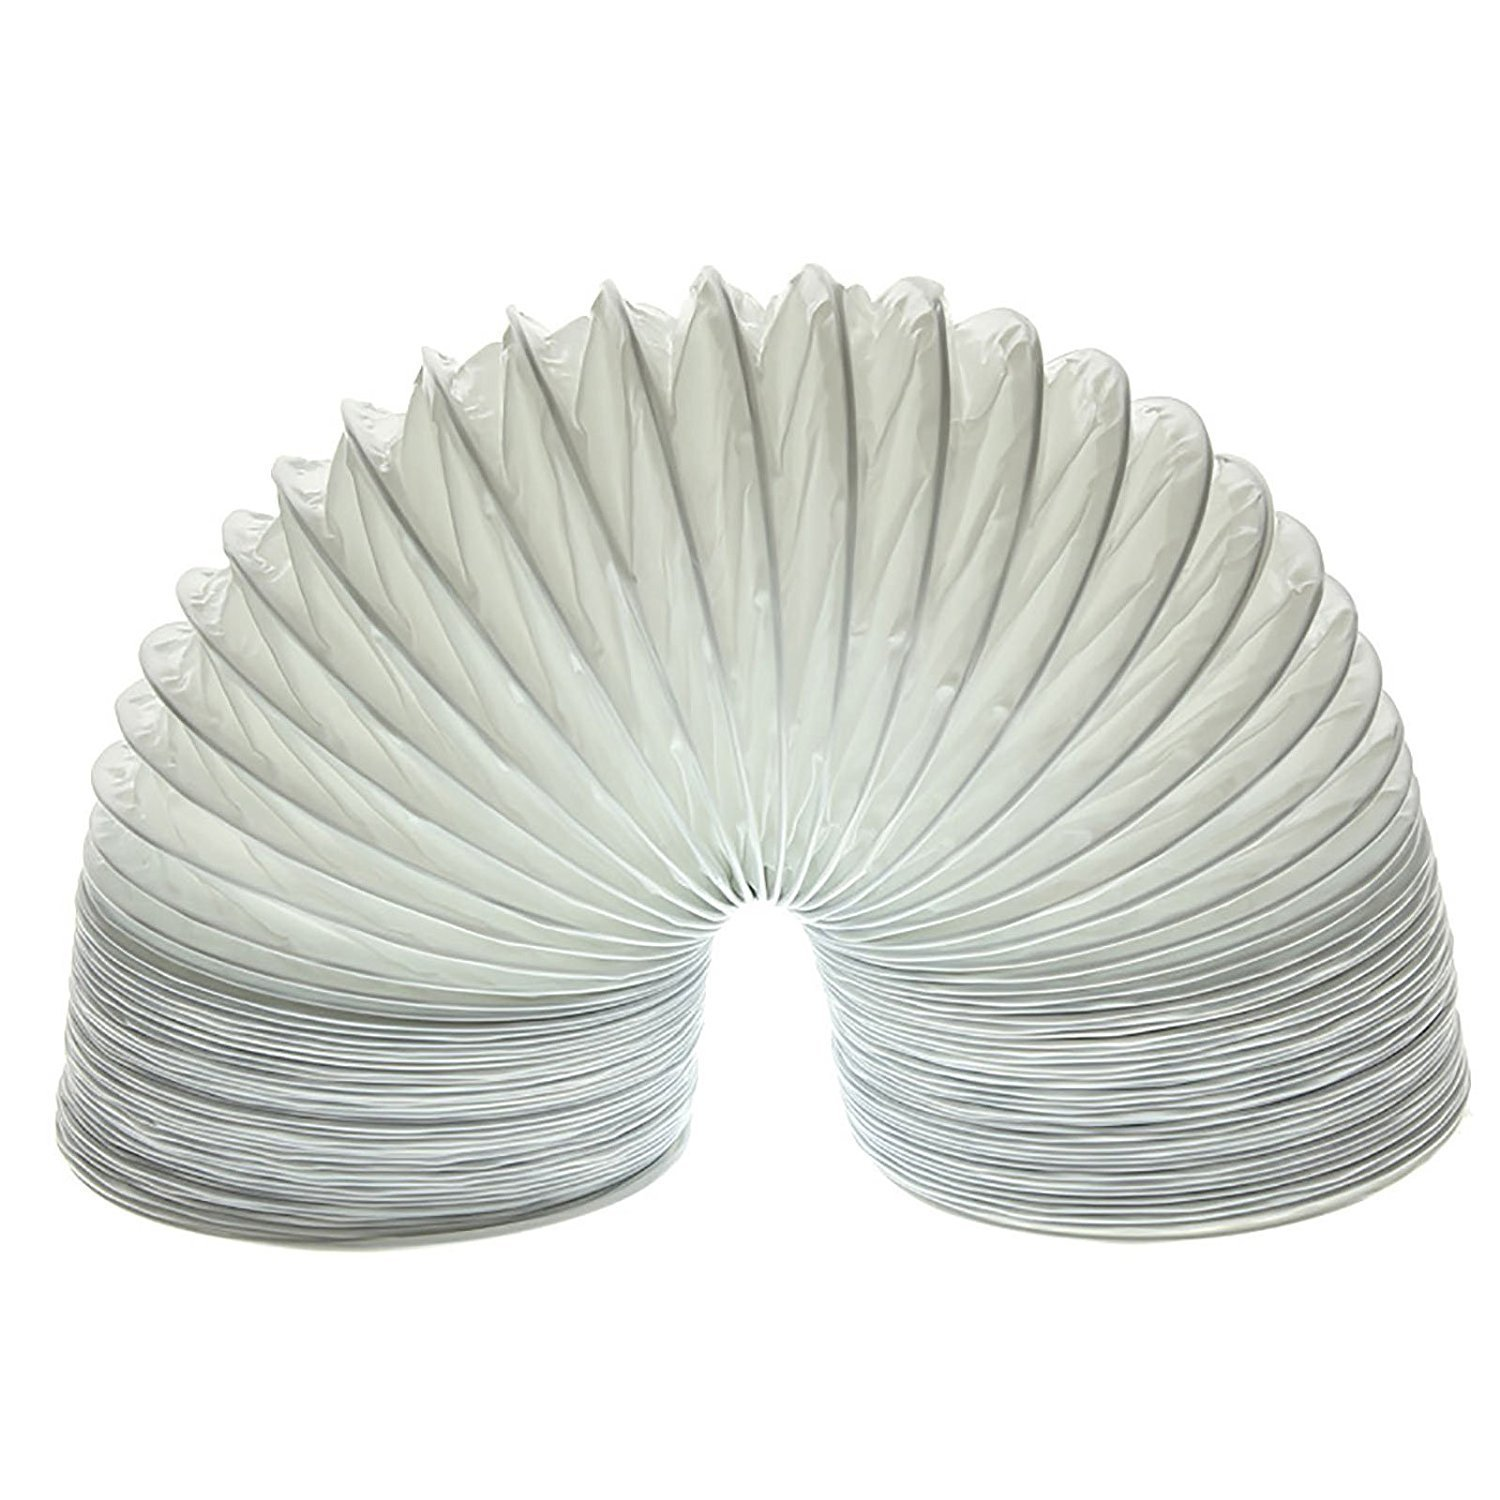 FindASpare High Quality Extra Strong UNIVERSAL Tumble Dryer Vent Hose 4m x 4inch Find A Spare